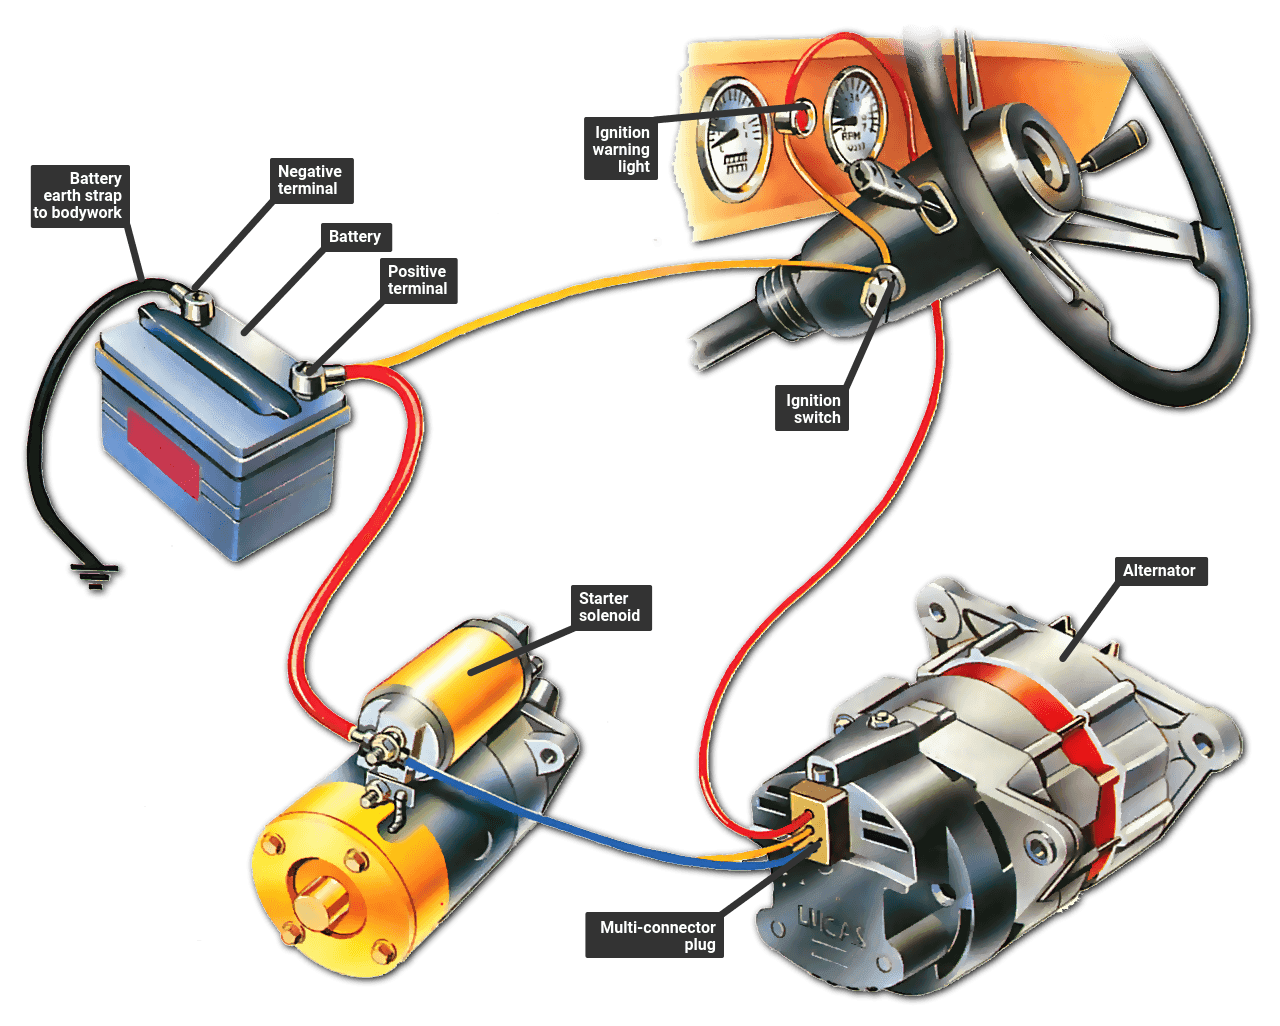 Toyota 2e Engine Wiring Diagram Free Download Will 5sfe Distributor Images Gallery